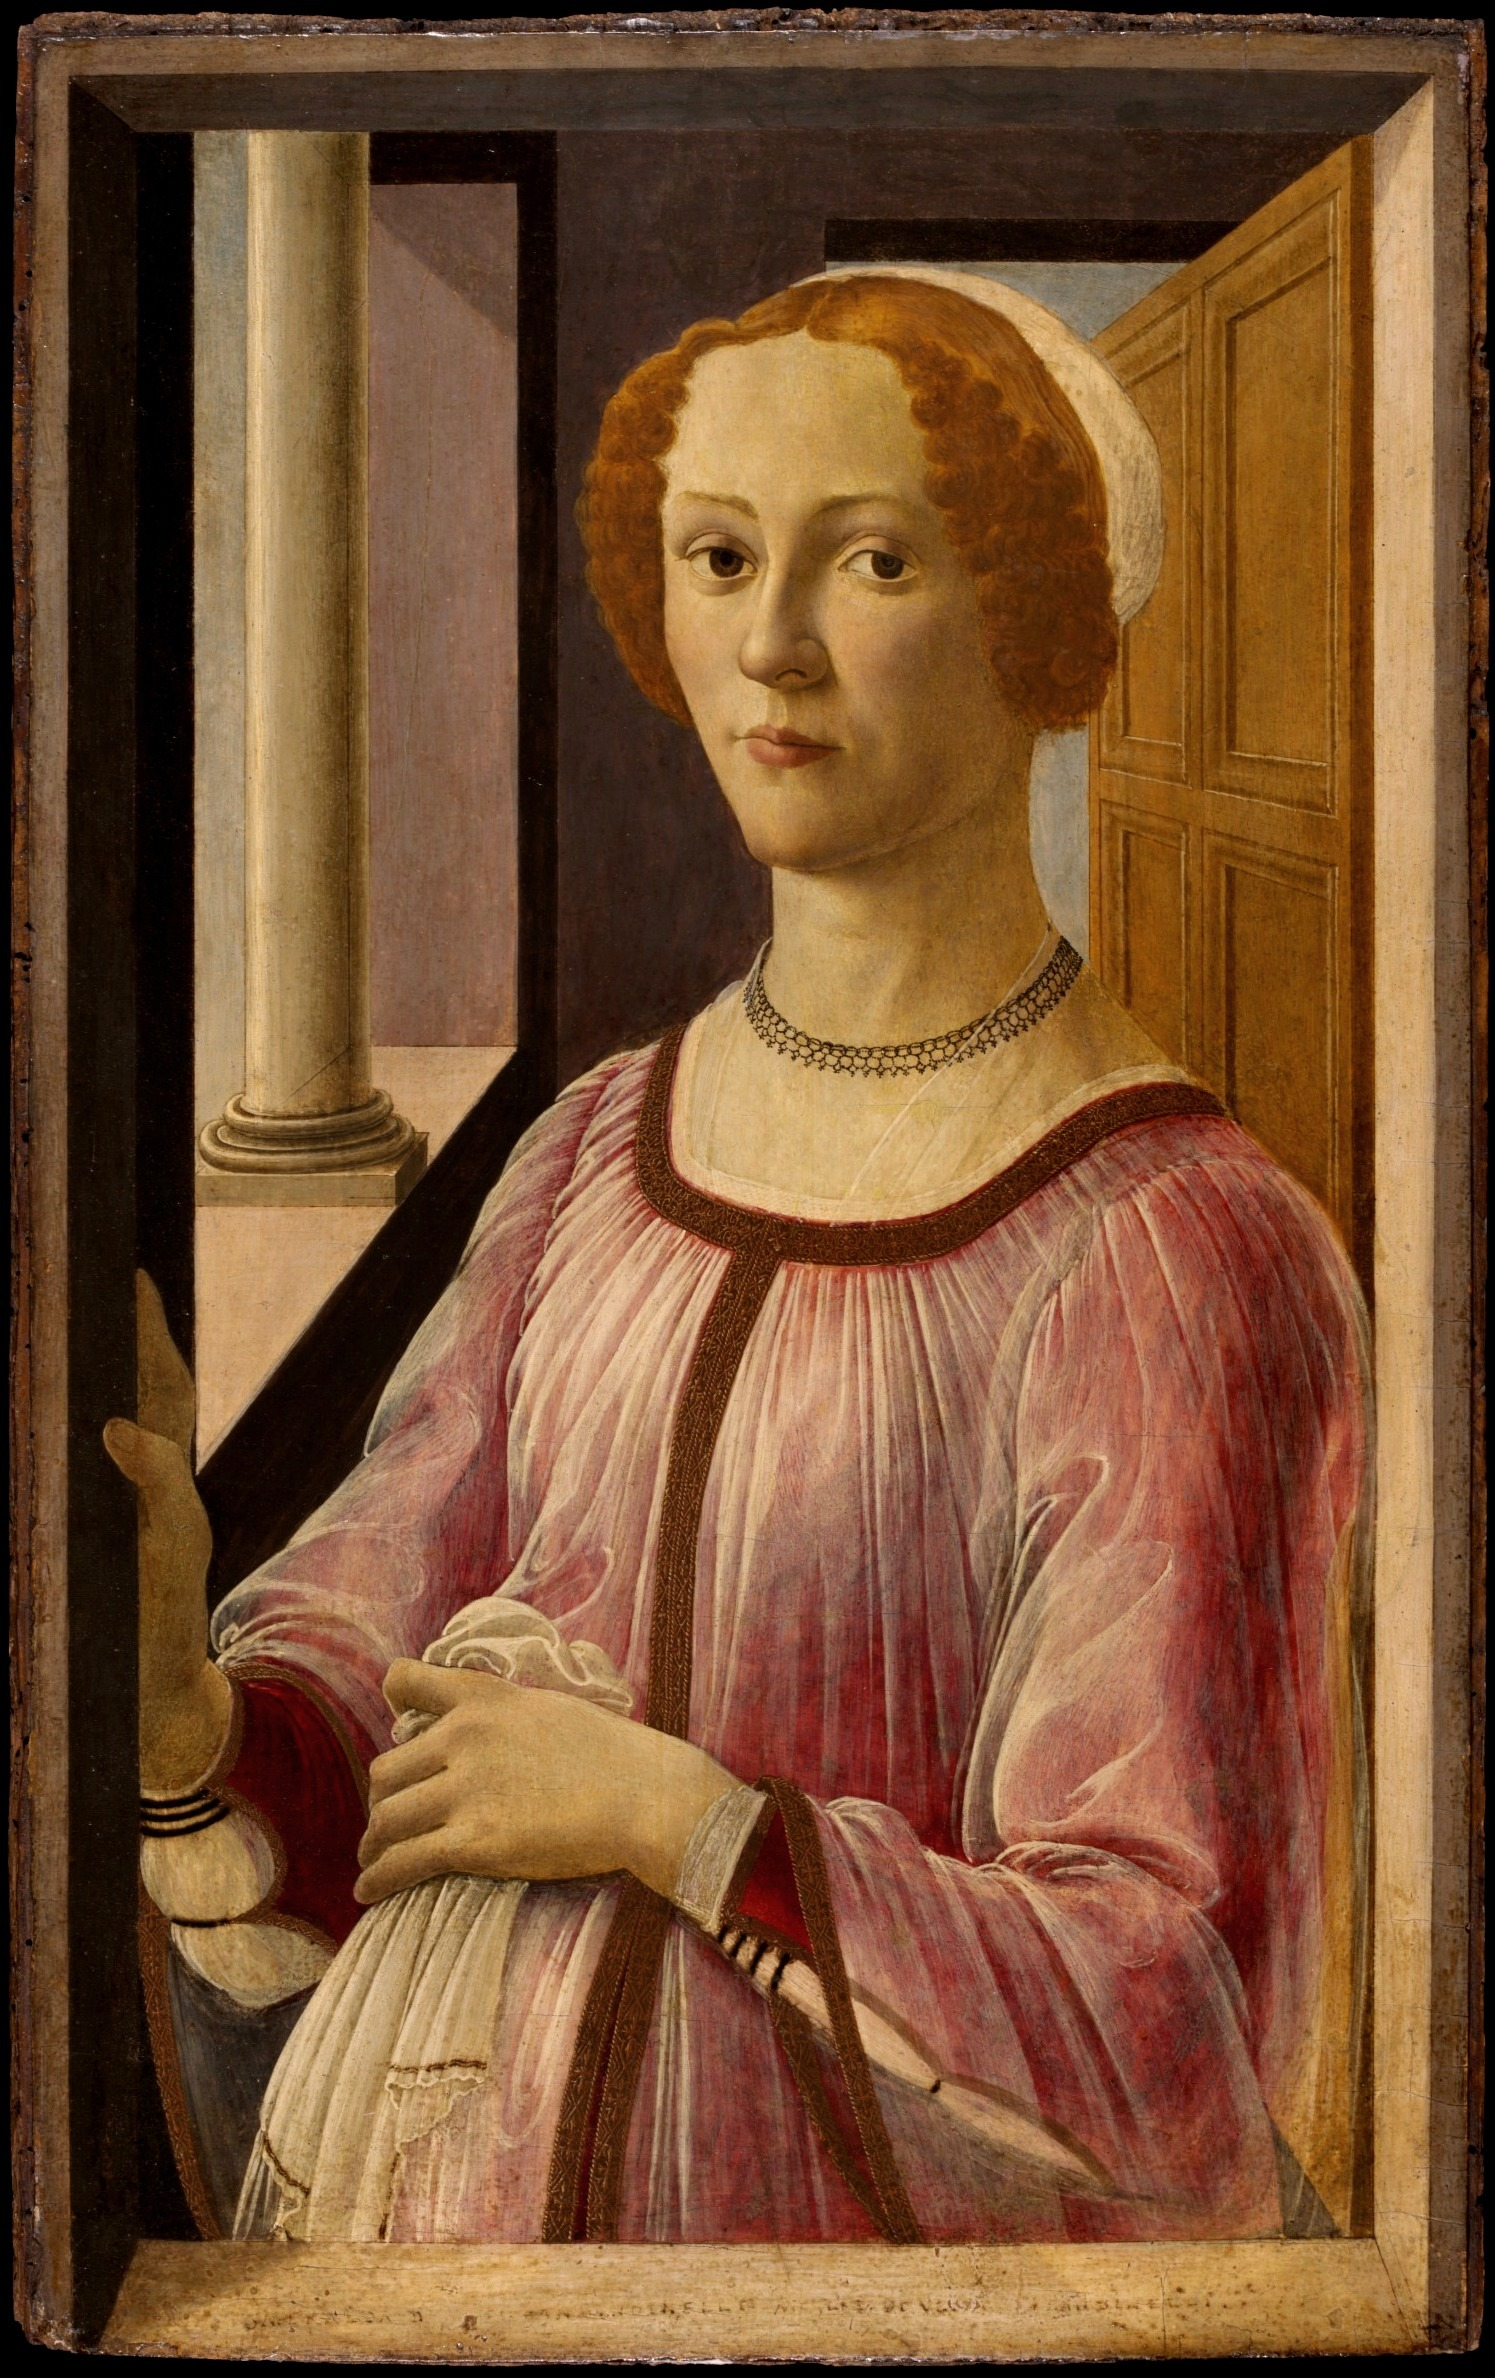 Portrait of a Lady known as Smeralda Brandini (1471) by Botticelli